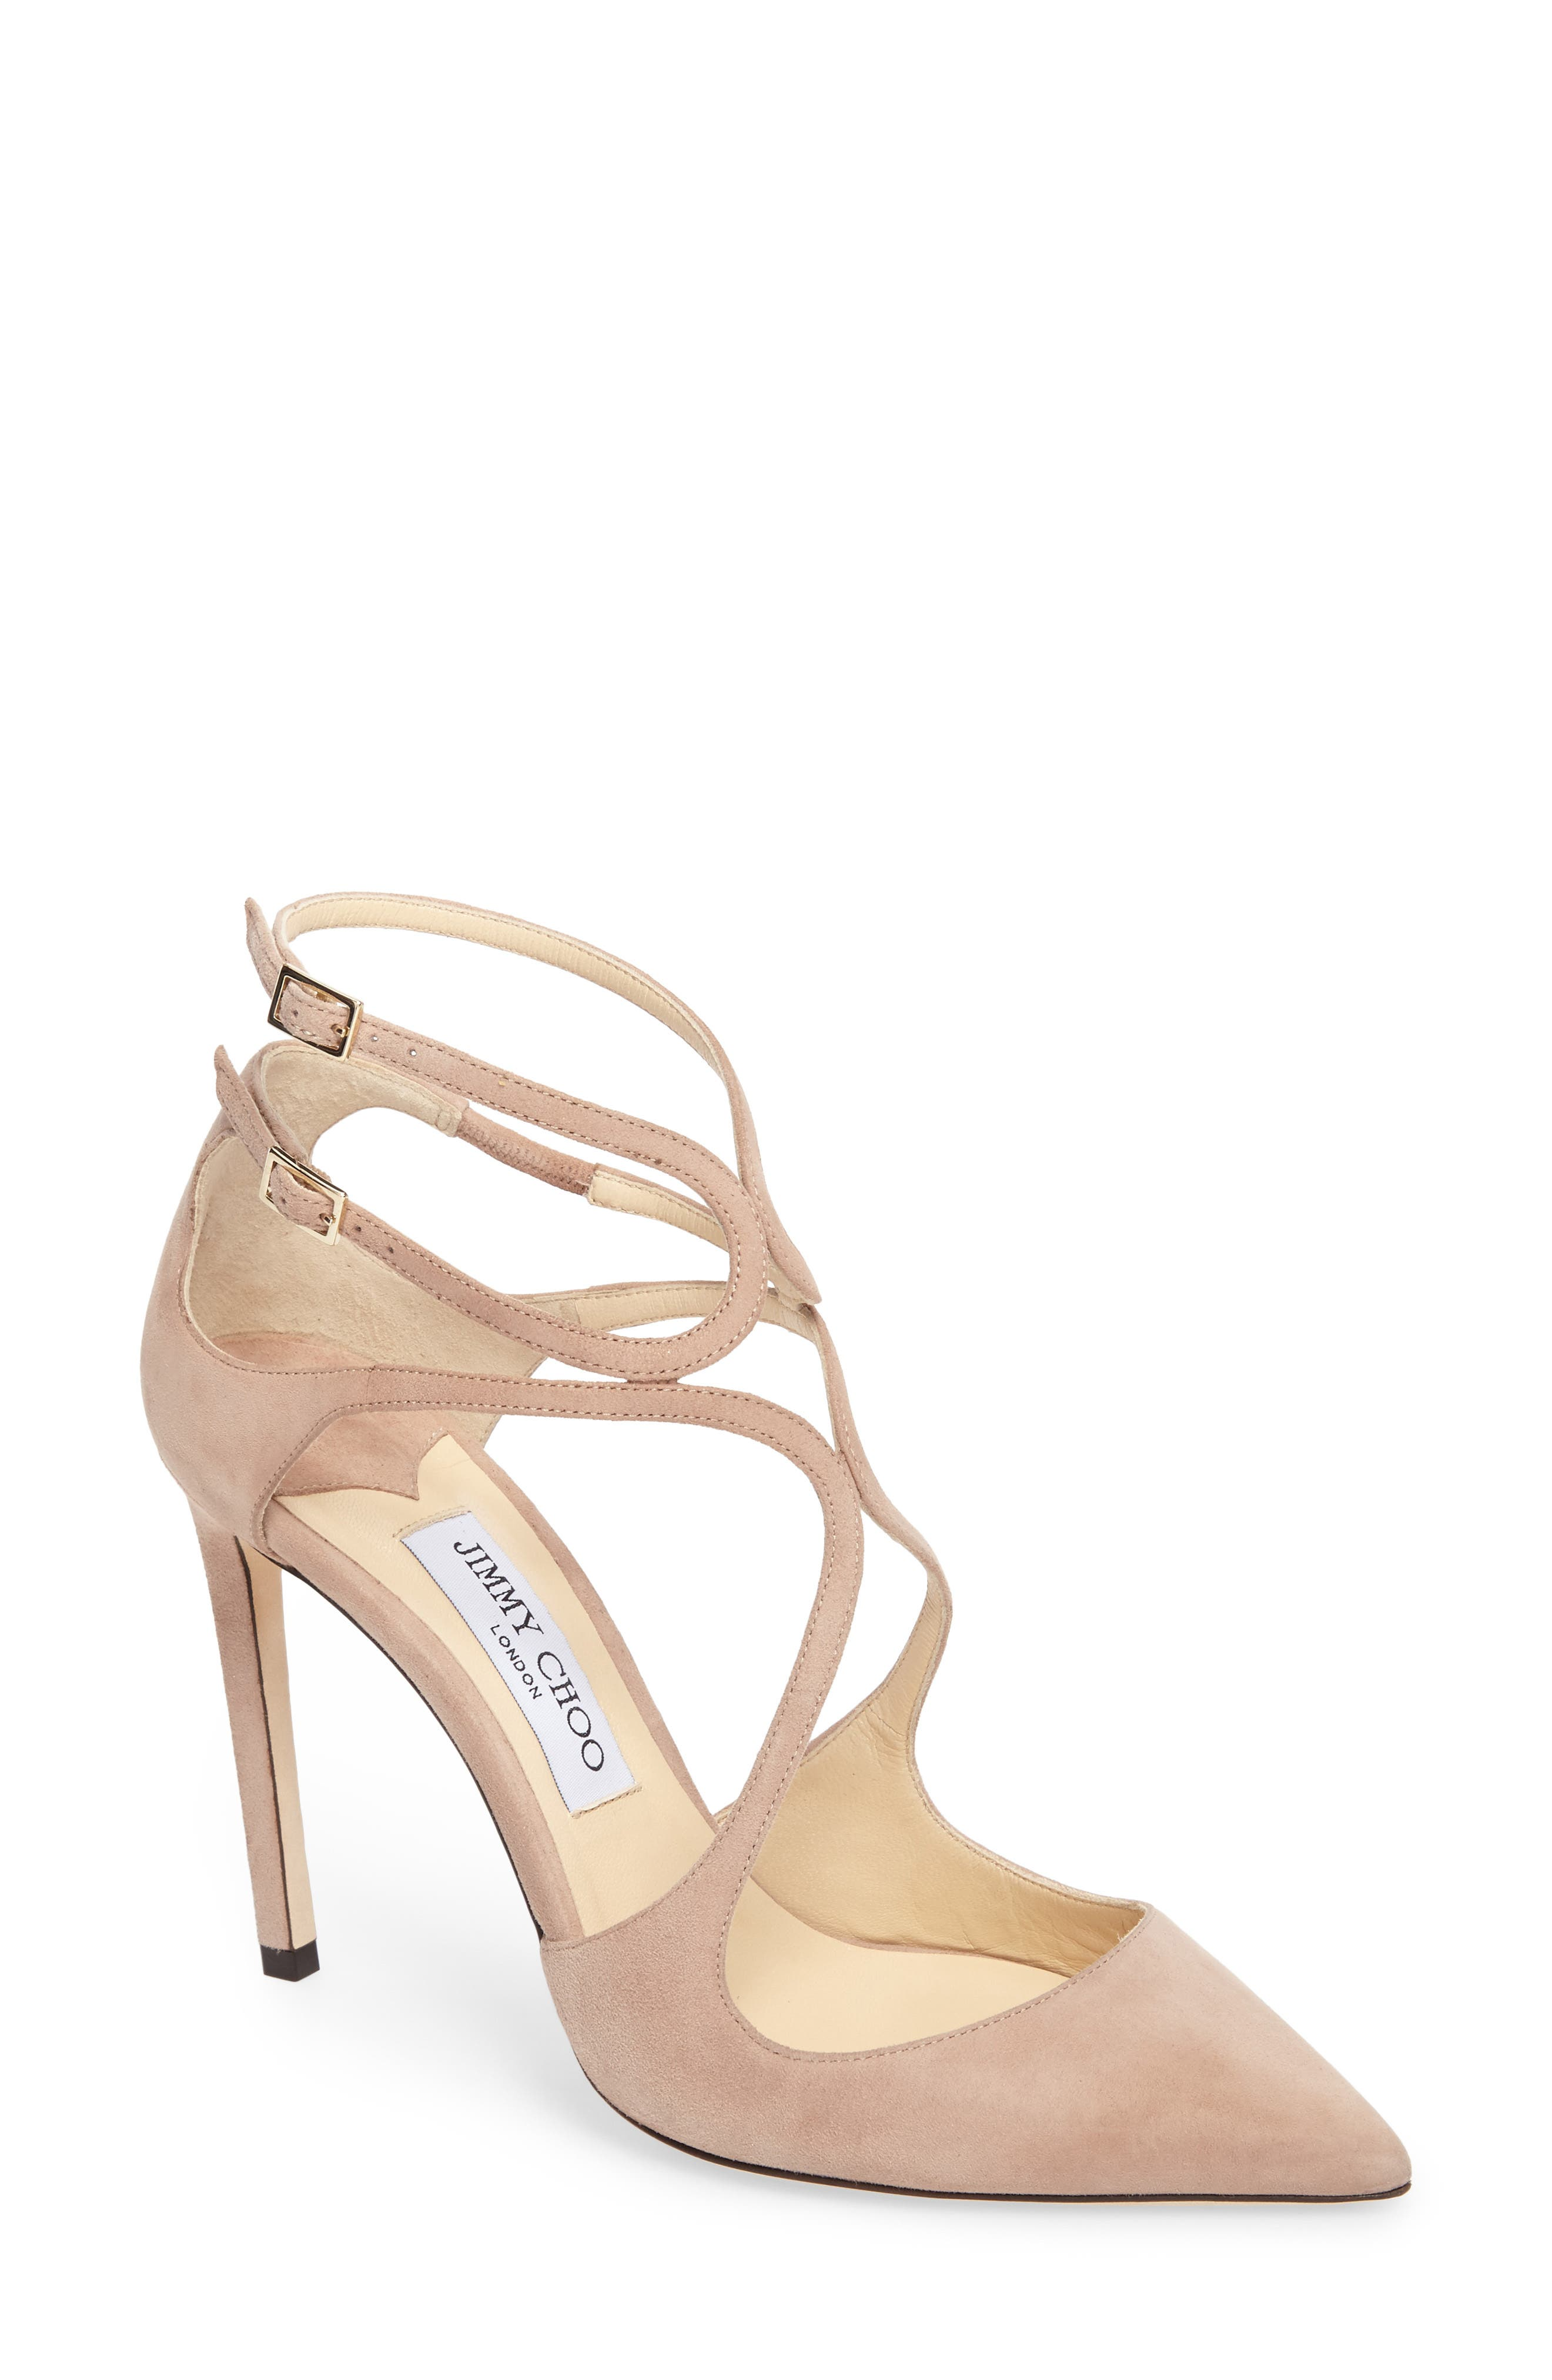 Alternate Image 1 Selected - Jimmy Choo Lancer Strappy Pump (Women)